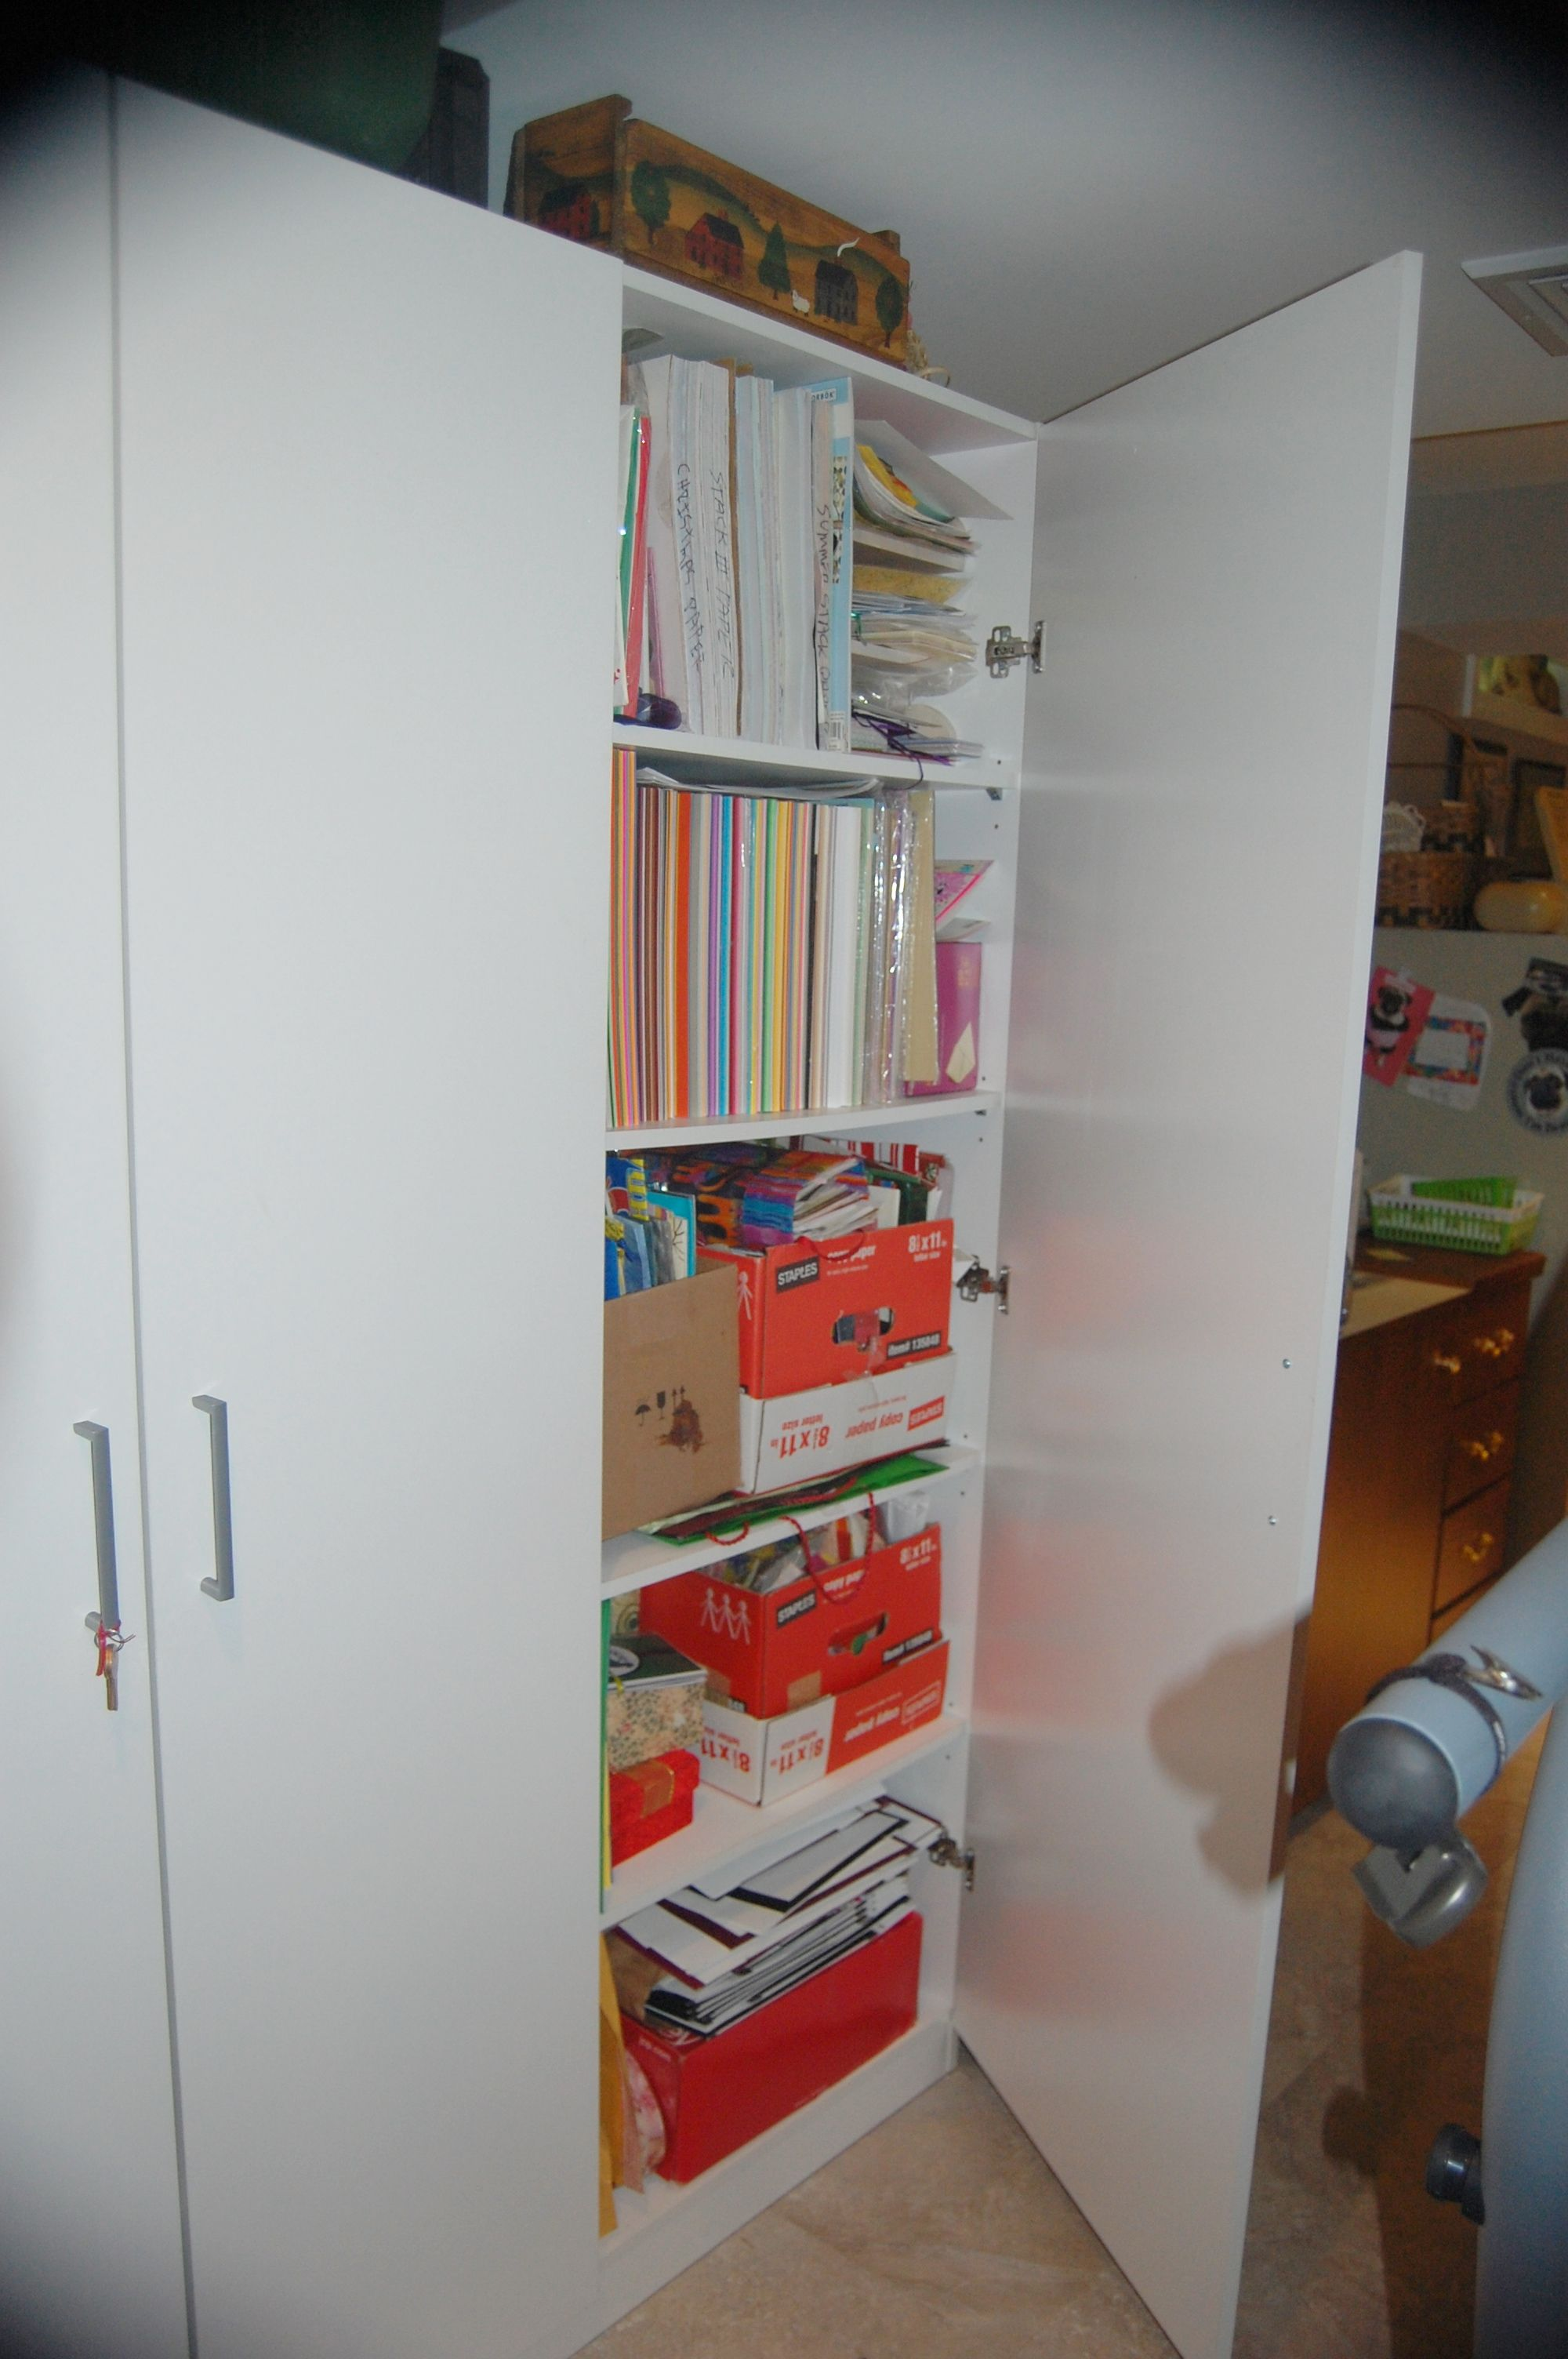 Ikea Dombas Cabinet Showing Cardstock, Papers, Cards, Gift Bags And